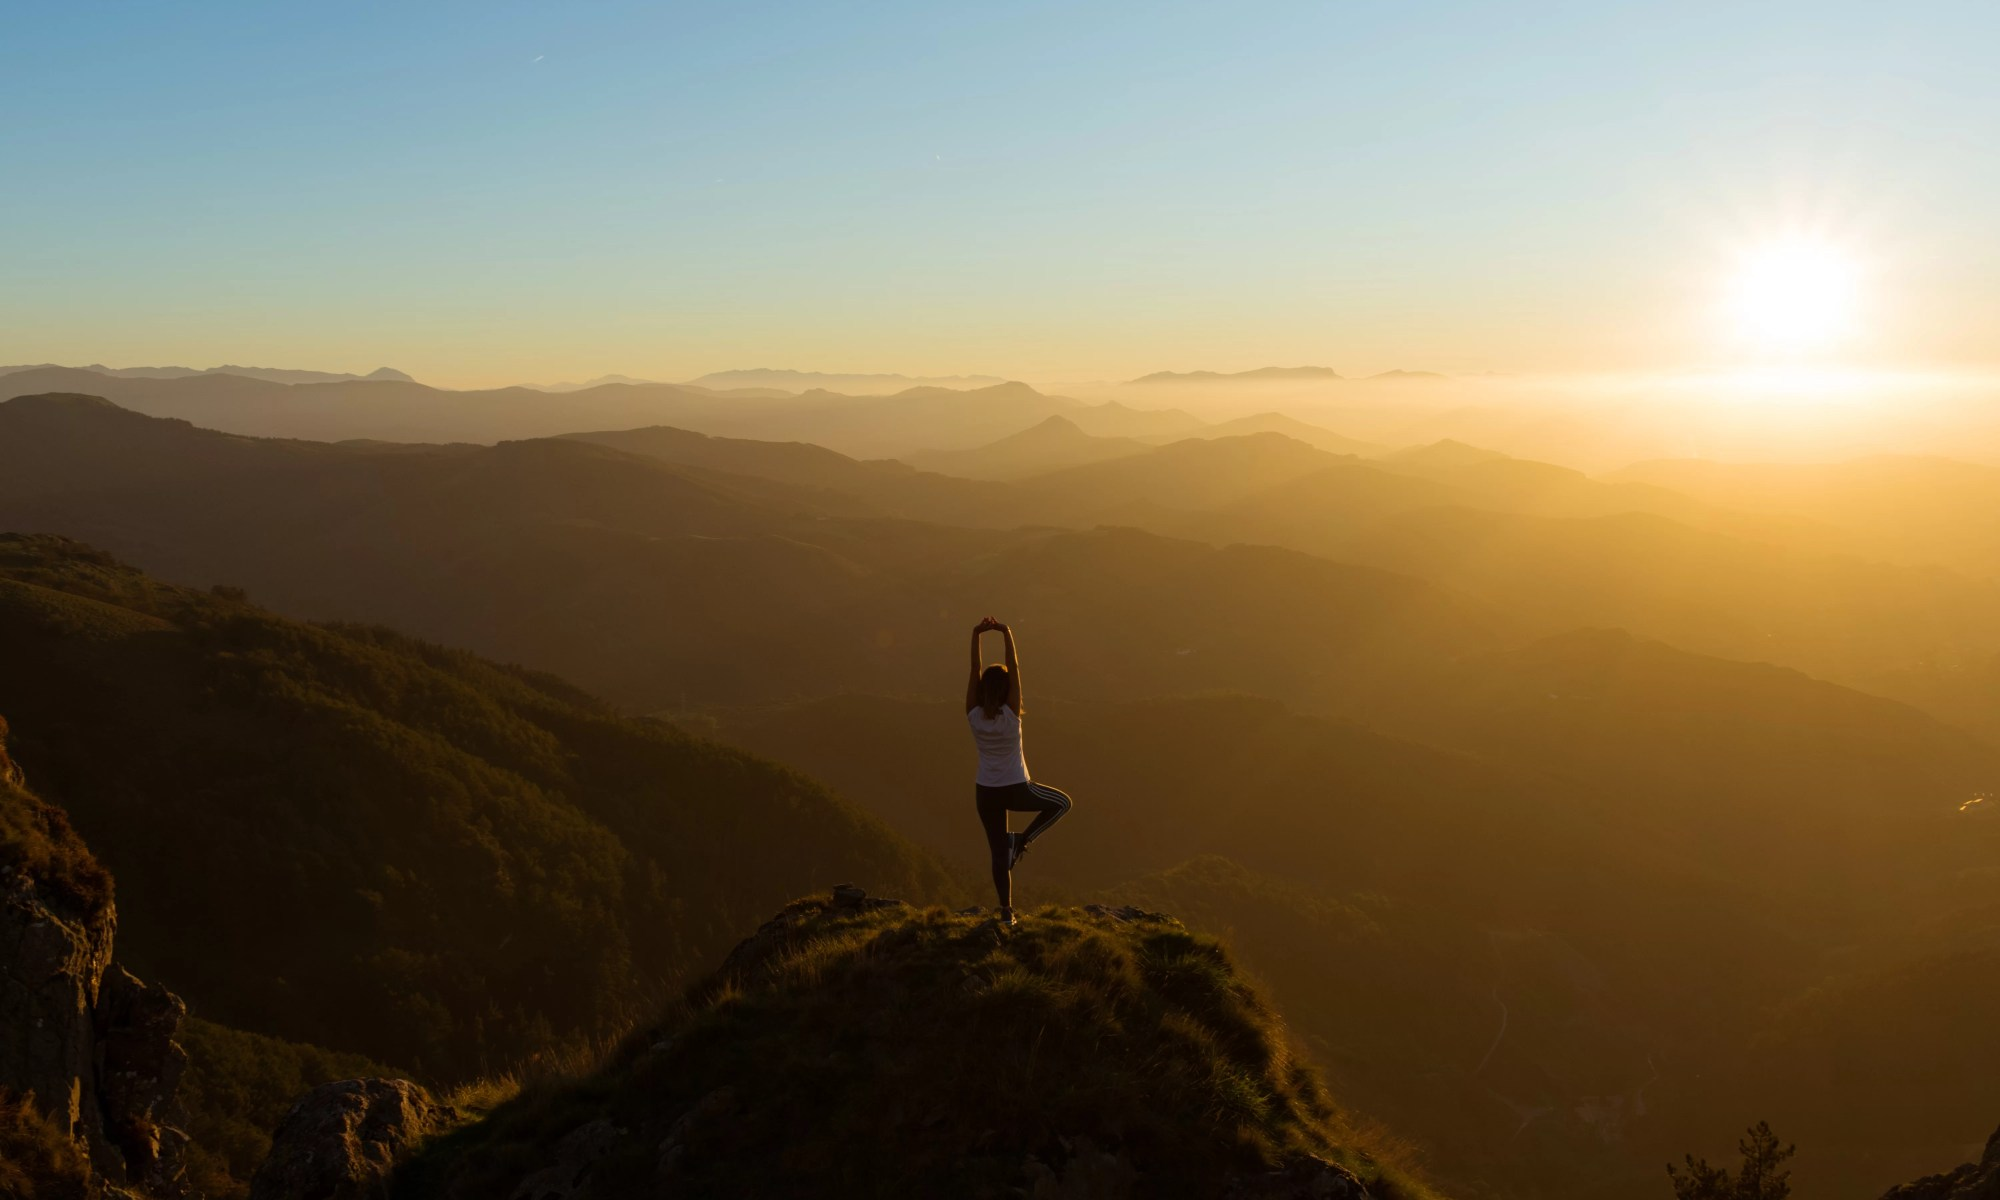 Tree Pose on a Mountain at Sunrise